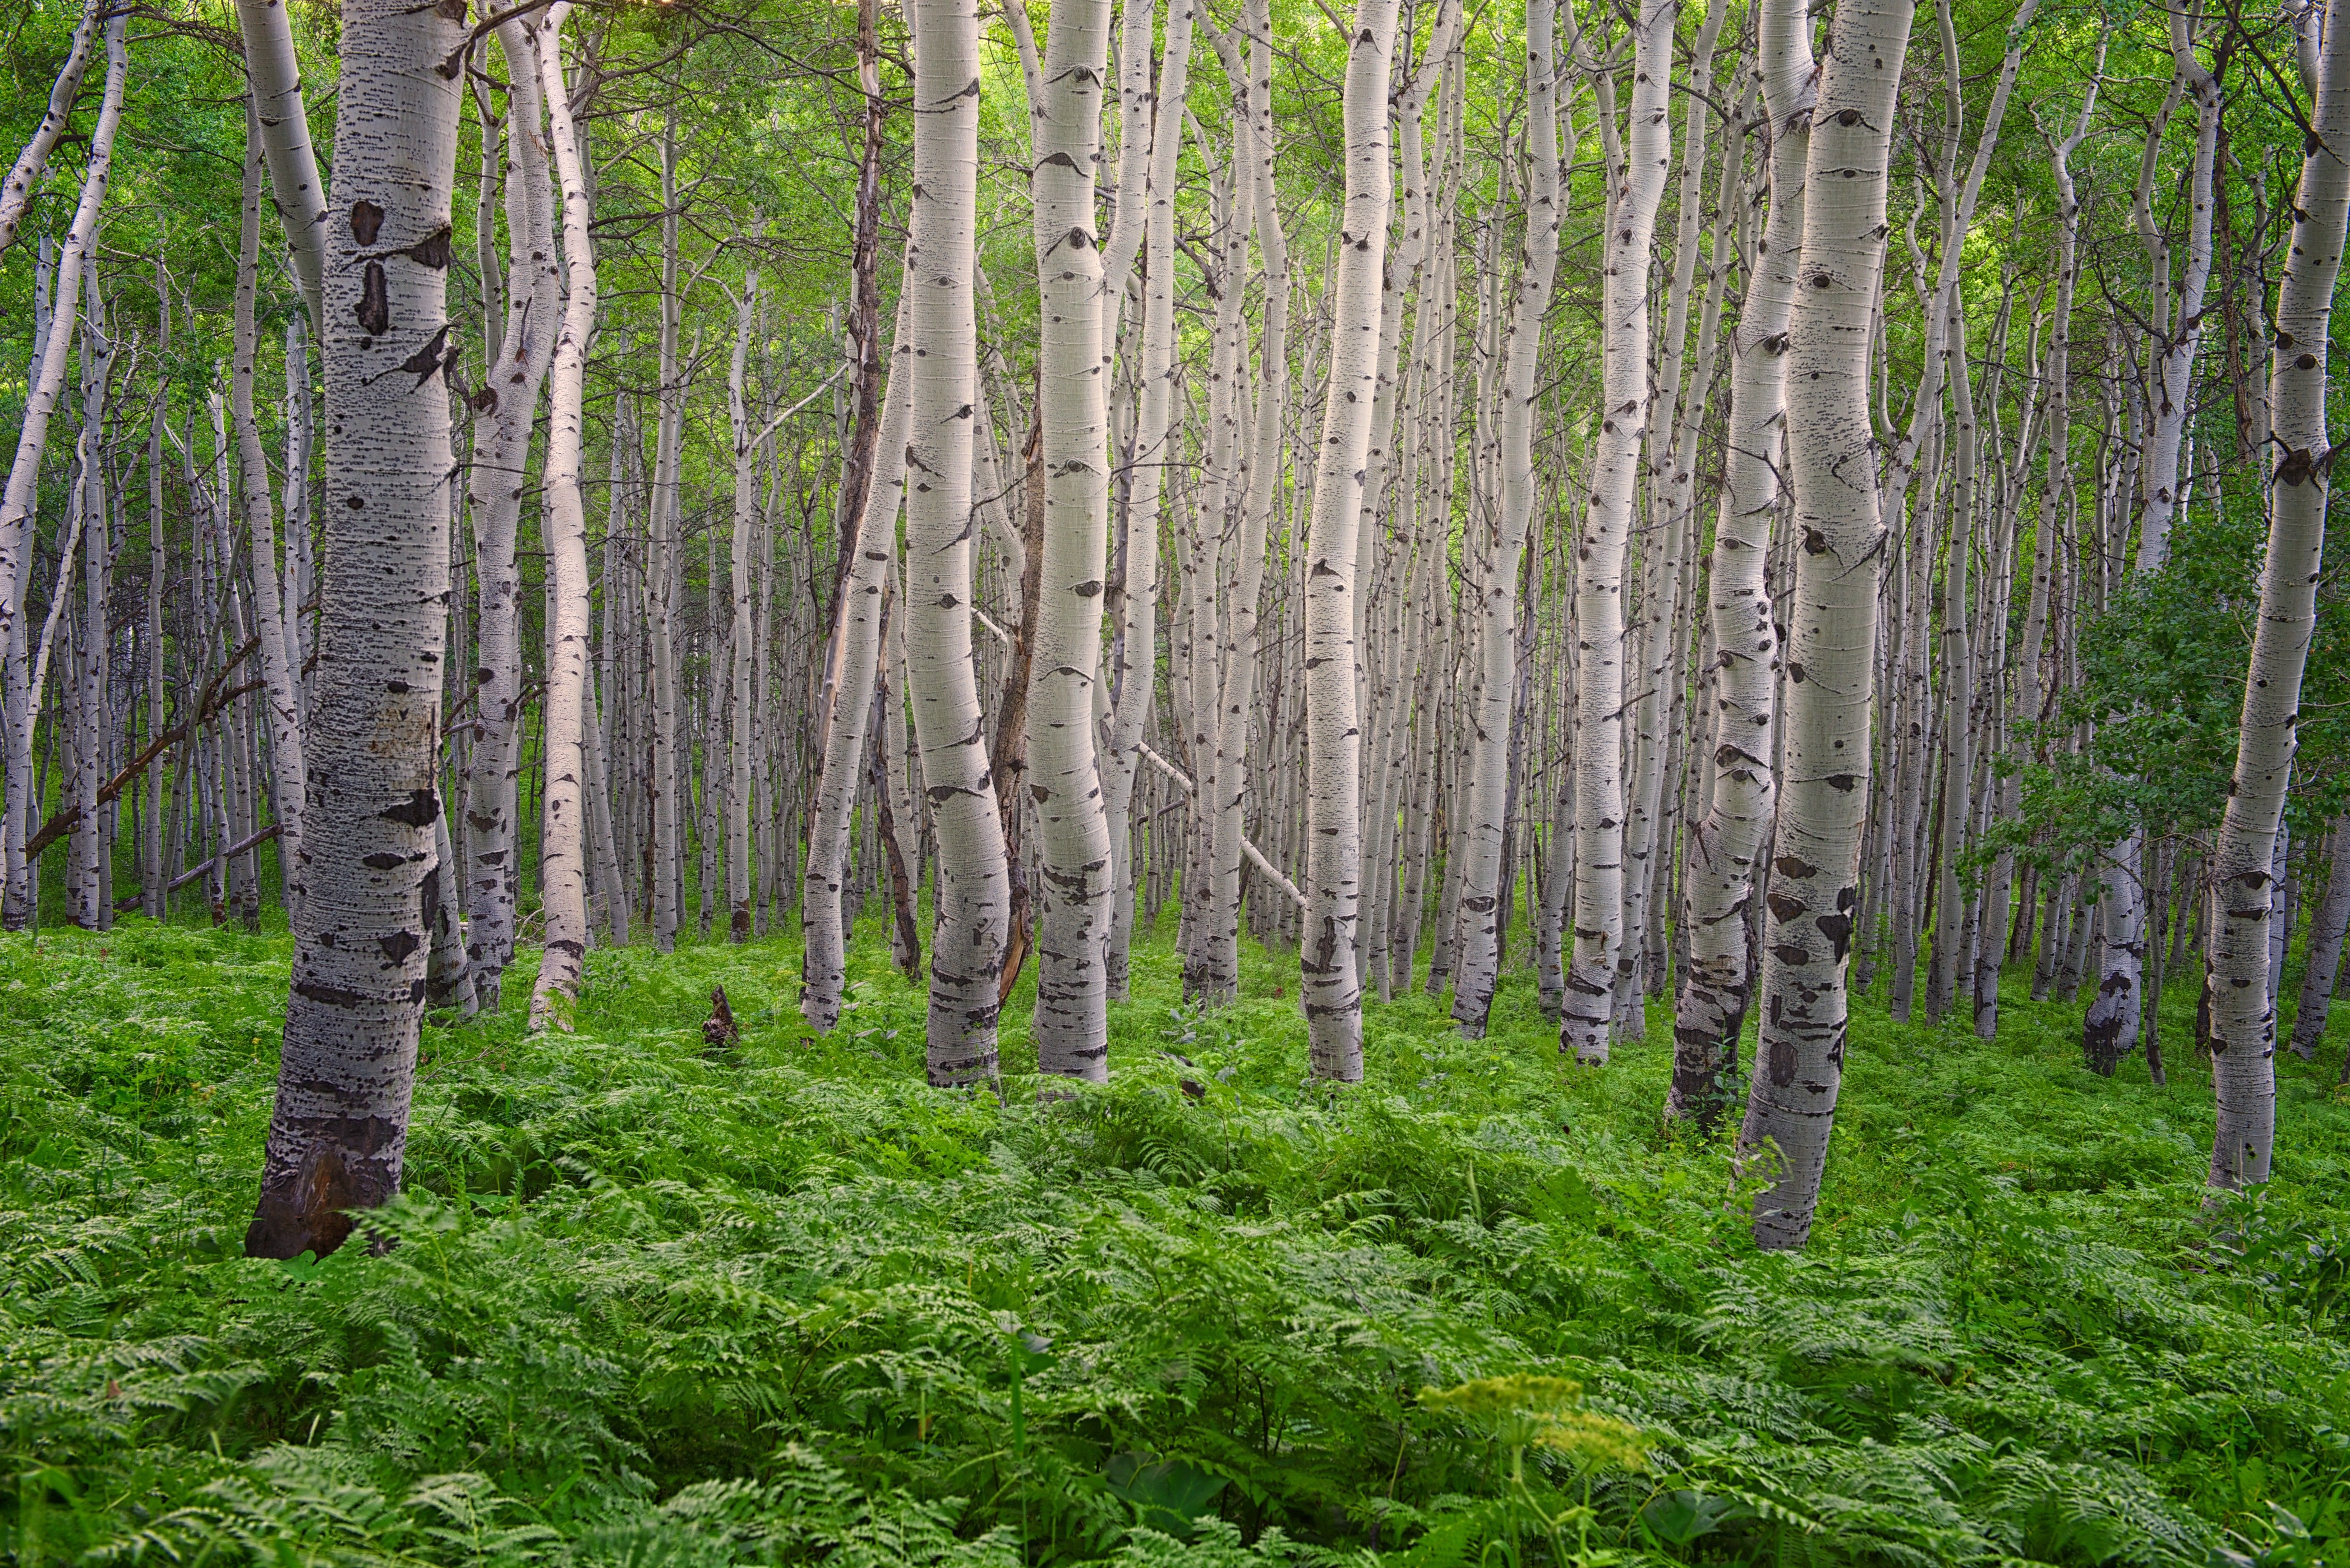 A grove of aspen trees in the summertime.